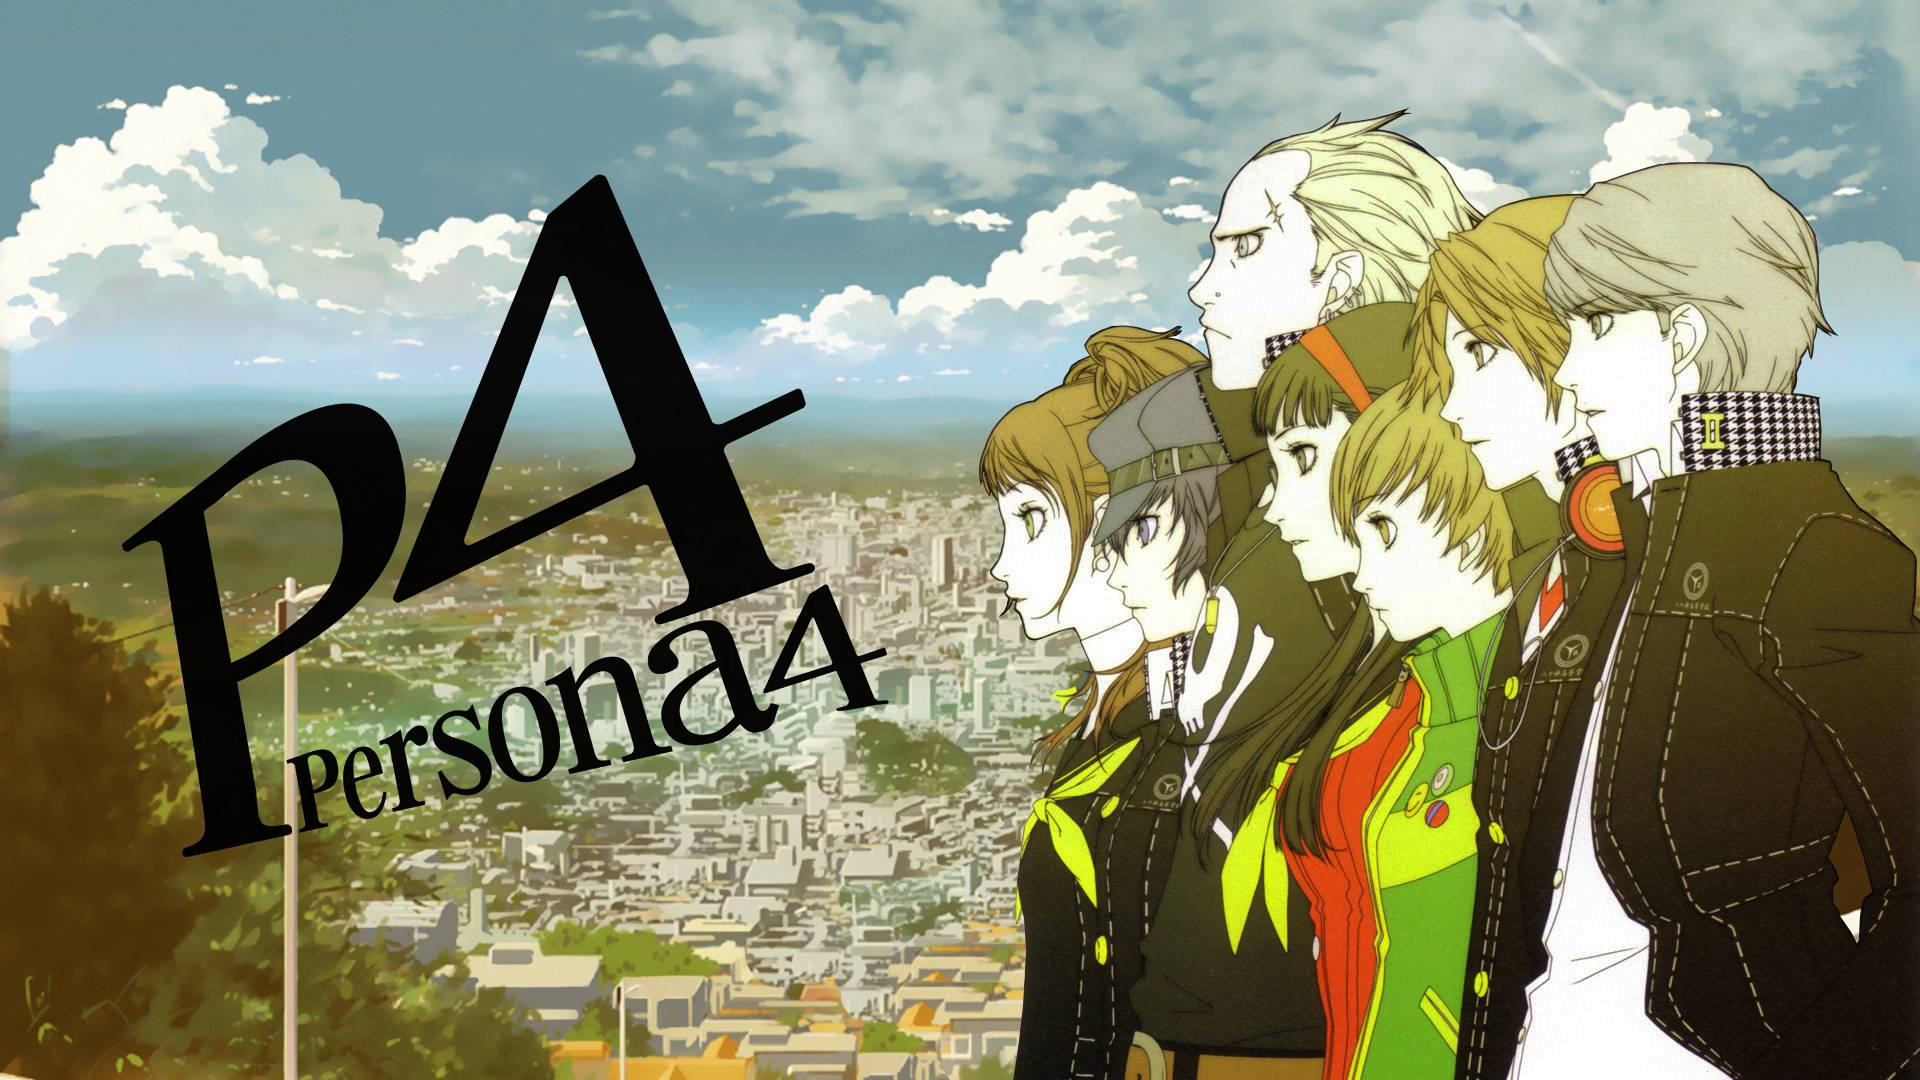 Persona 4 Wallpaper 1920x1080 px Free Download - Wallpaperest ID ...